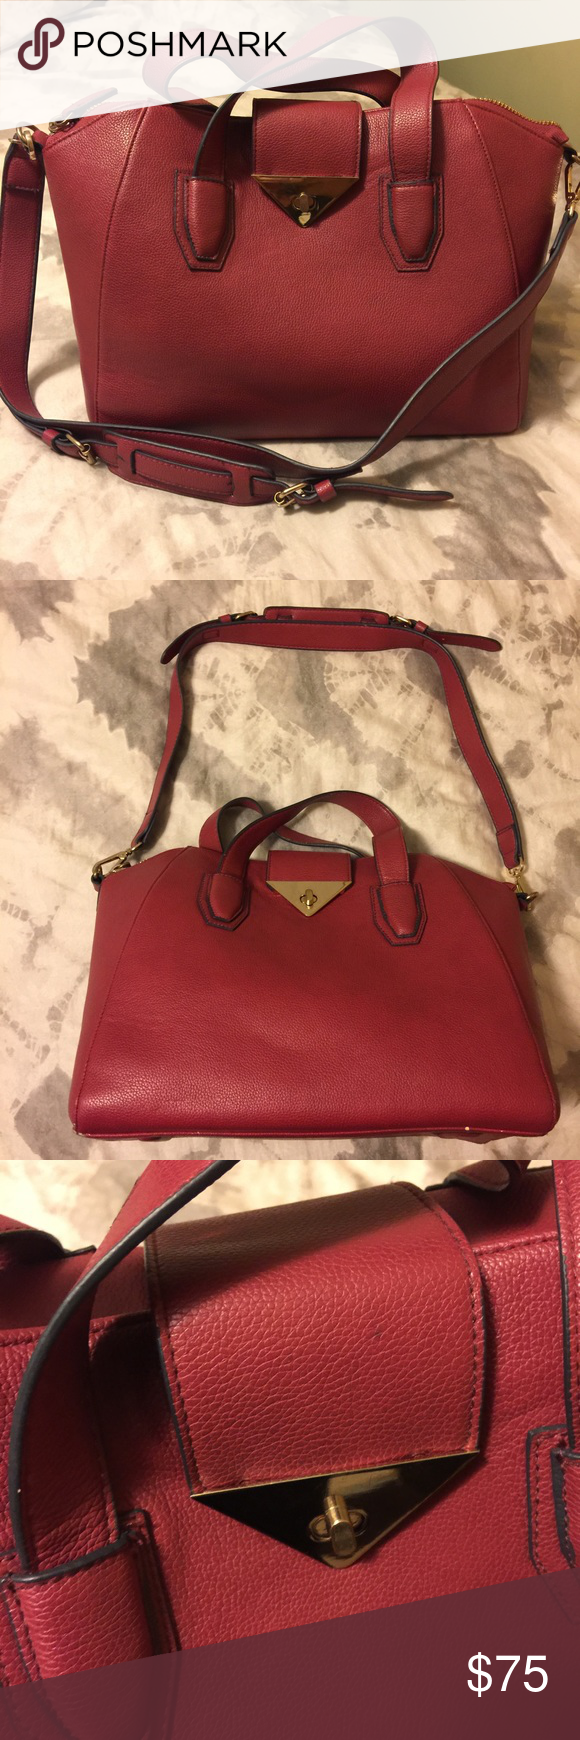 Red Bucket Bag Topshop Red Bucket Bag wth shoulder strap and gold details. No signs of wear. In excellent used condition. Strap 30 inches not adjustable  Length 15 inches Width 8 inches  Height 9 inches Topshop Bags Shoulder Bags